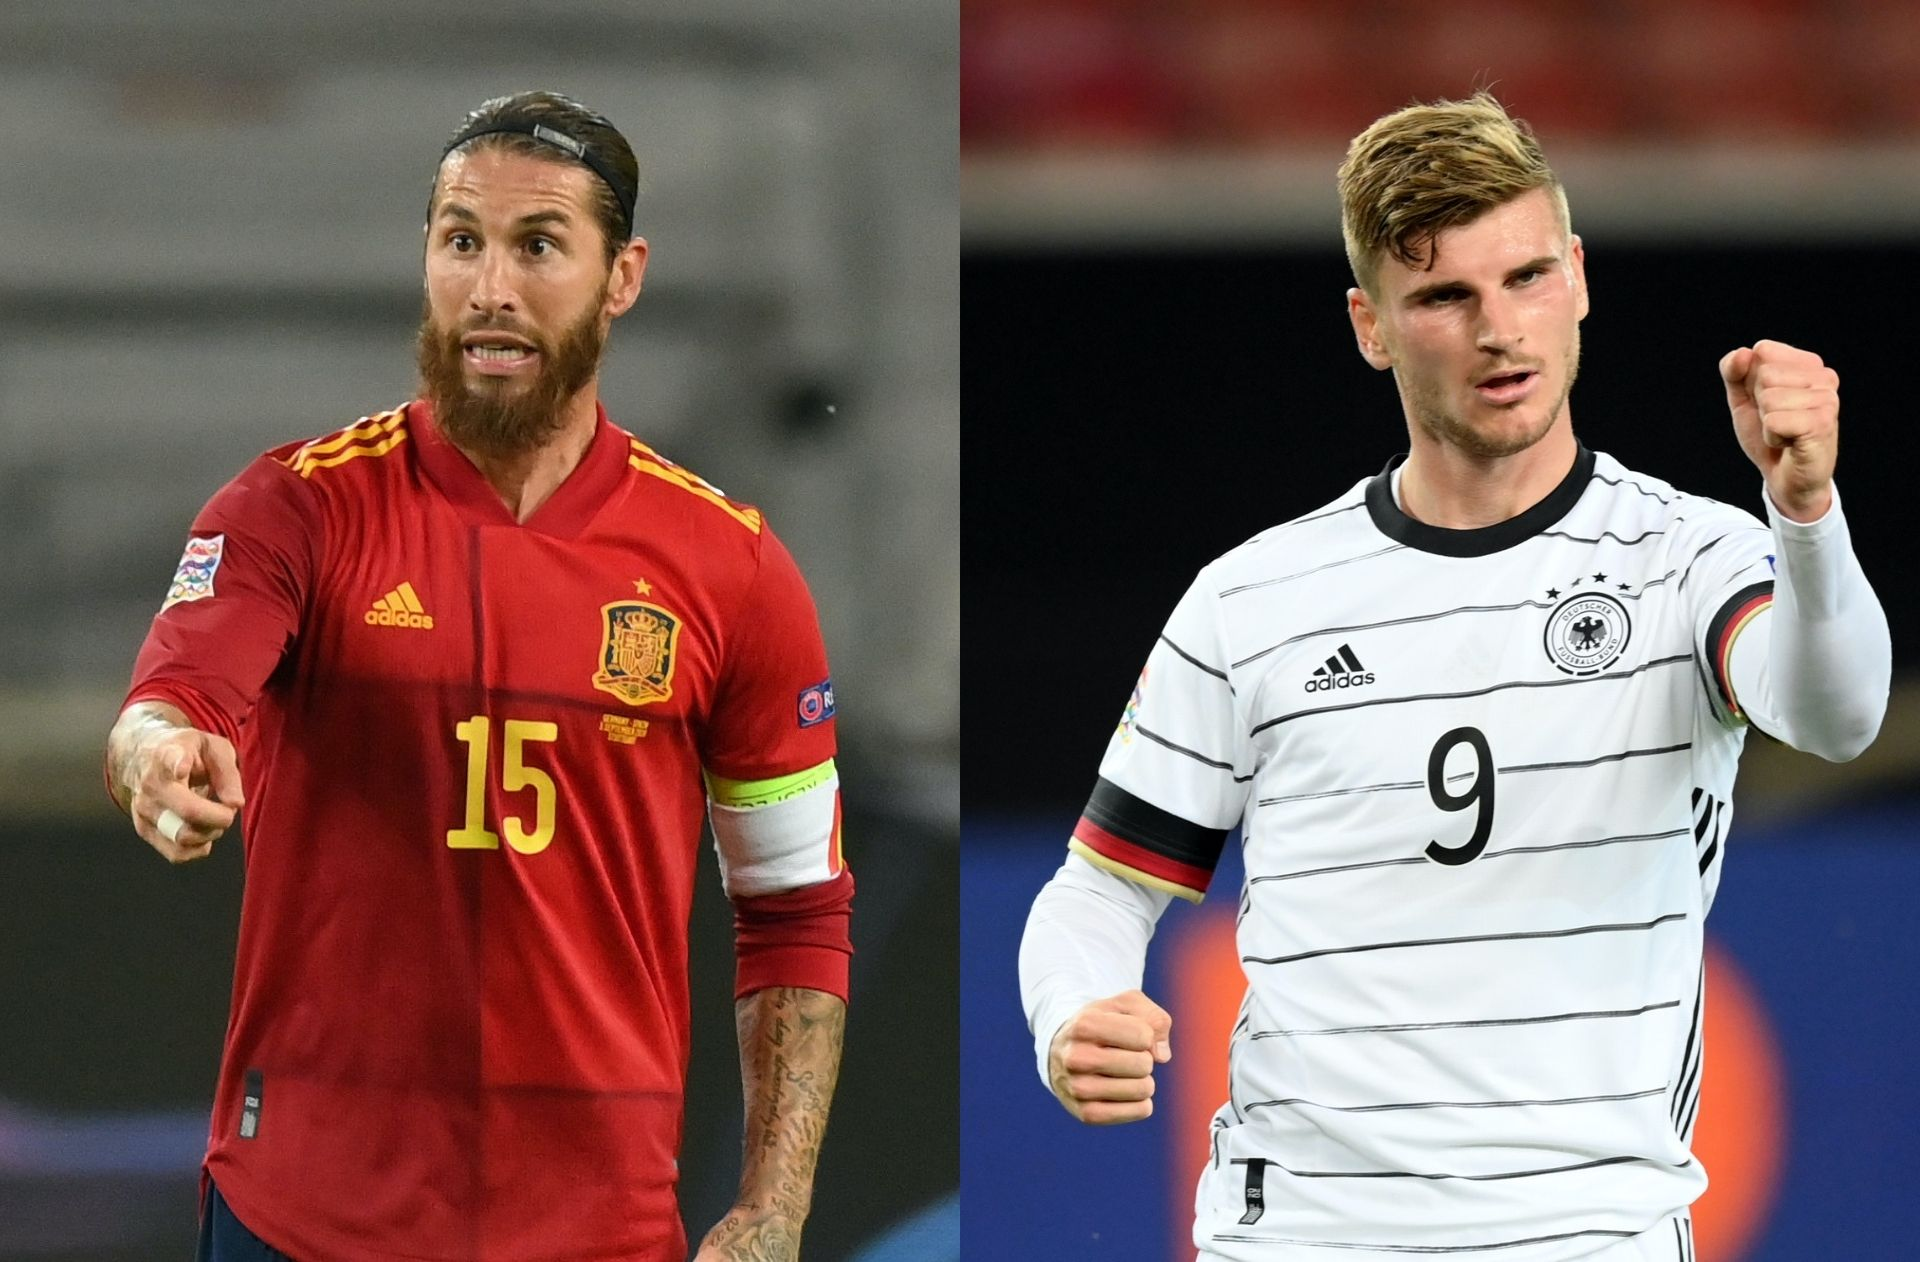 Spain v france betting preview best places for sports betting